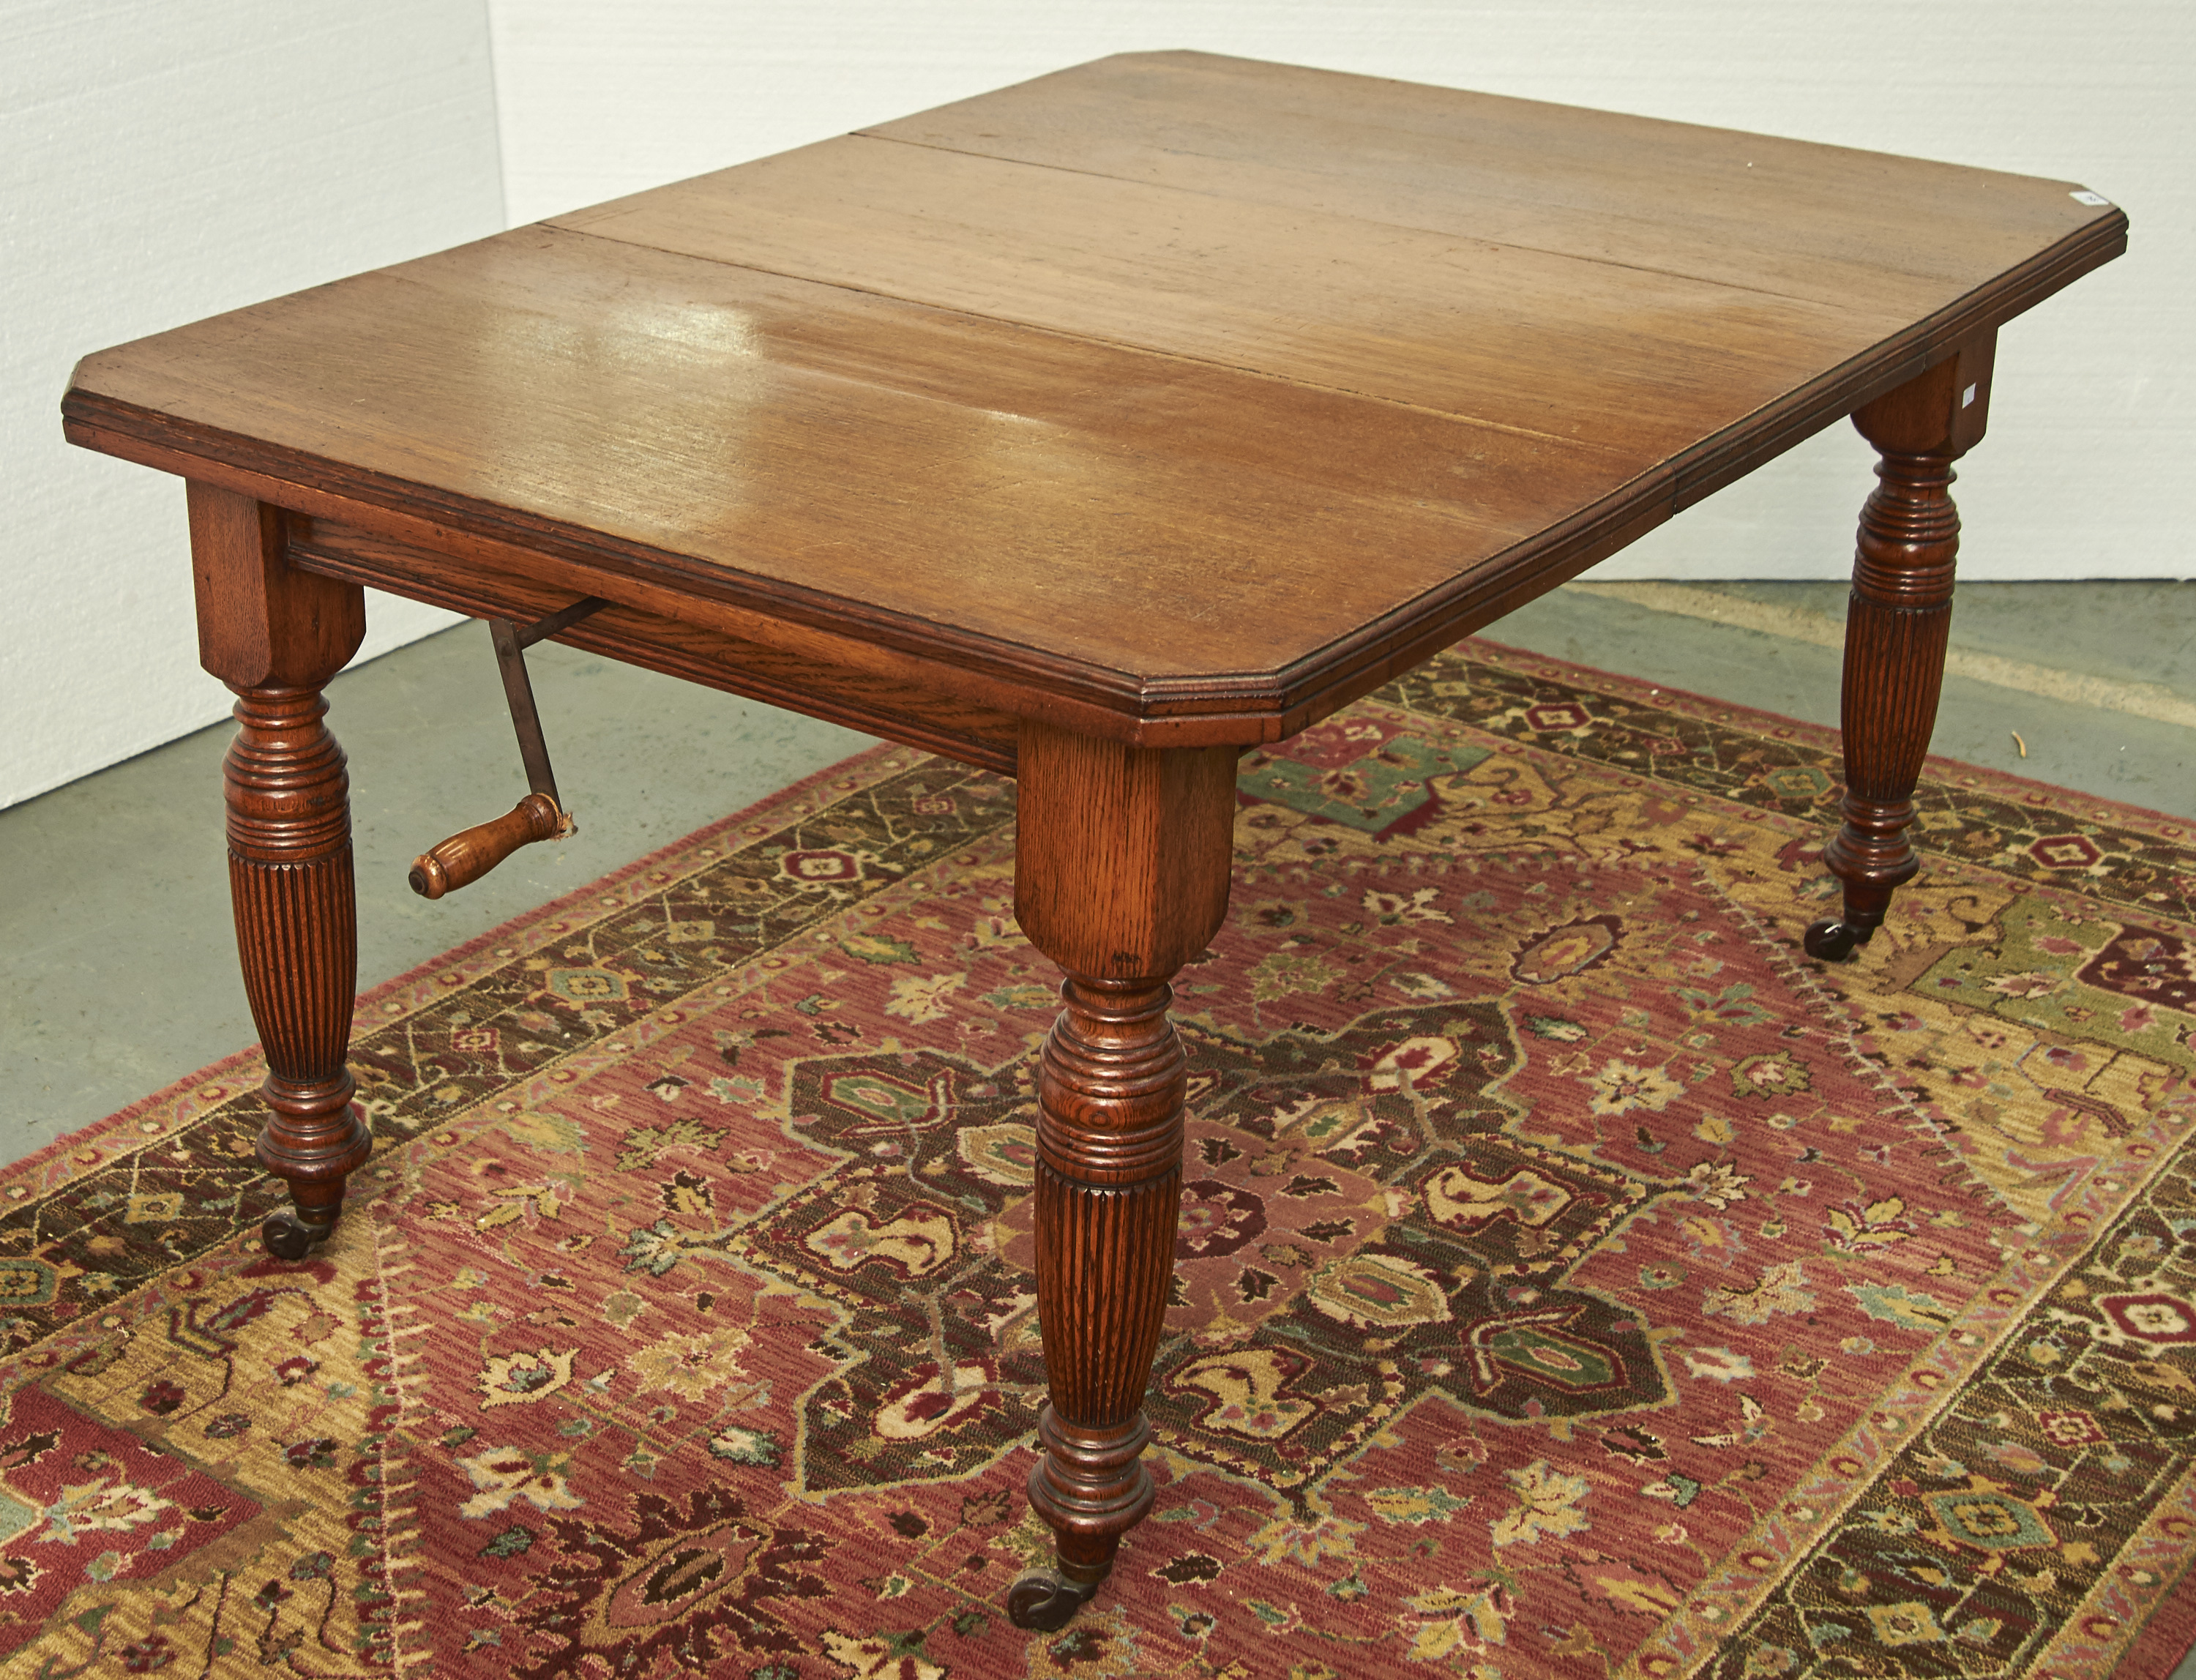 A VICTORIAN OAK EXTENDING DINING TABLE, C1880, CANTERED RECTANGULAR TOP ABOVE TURNED FLUTED LEGS